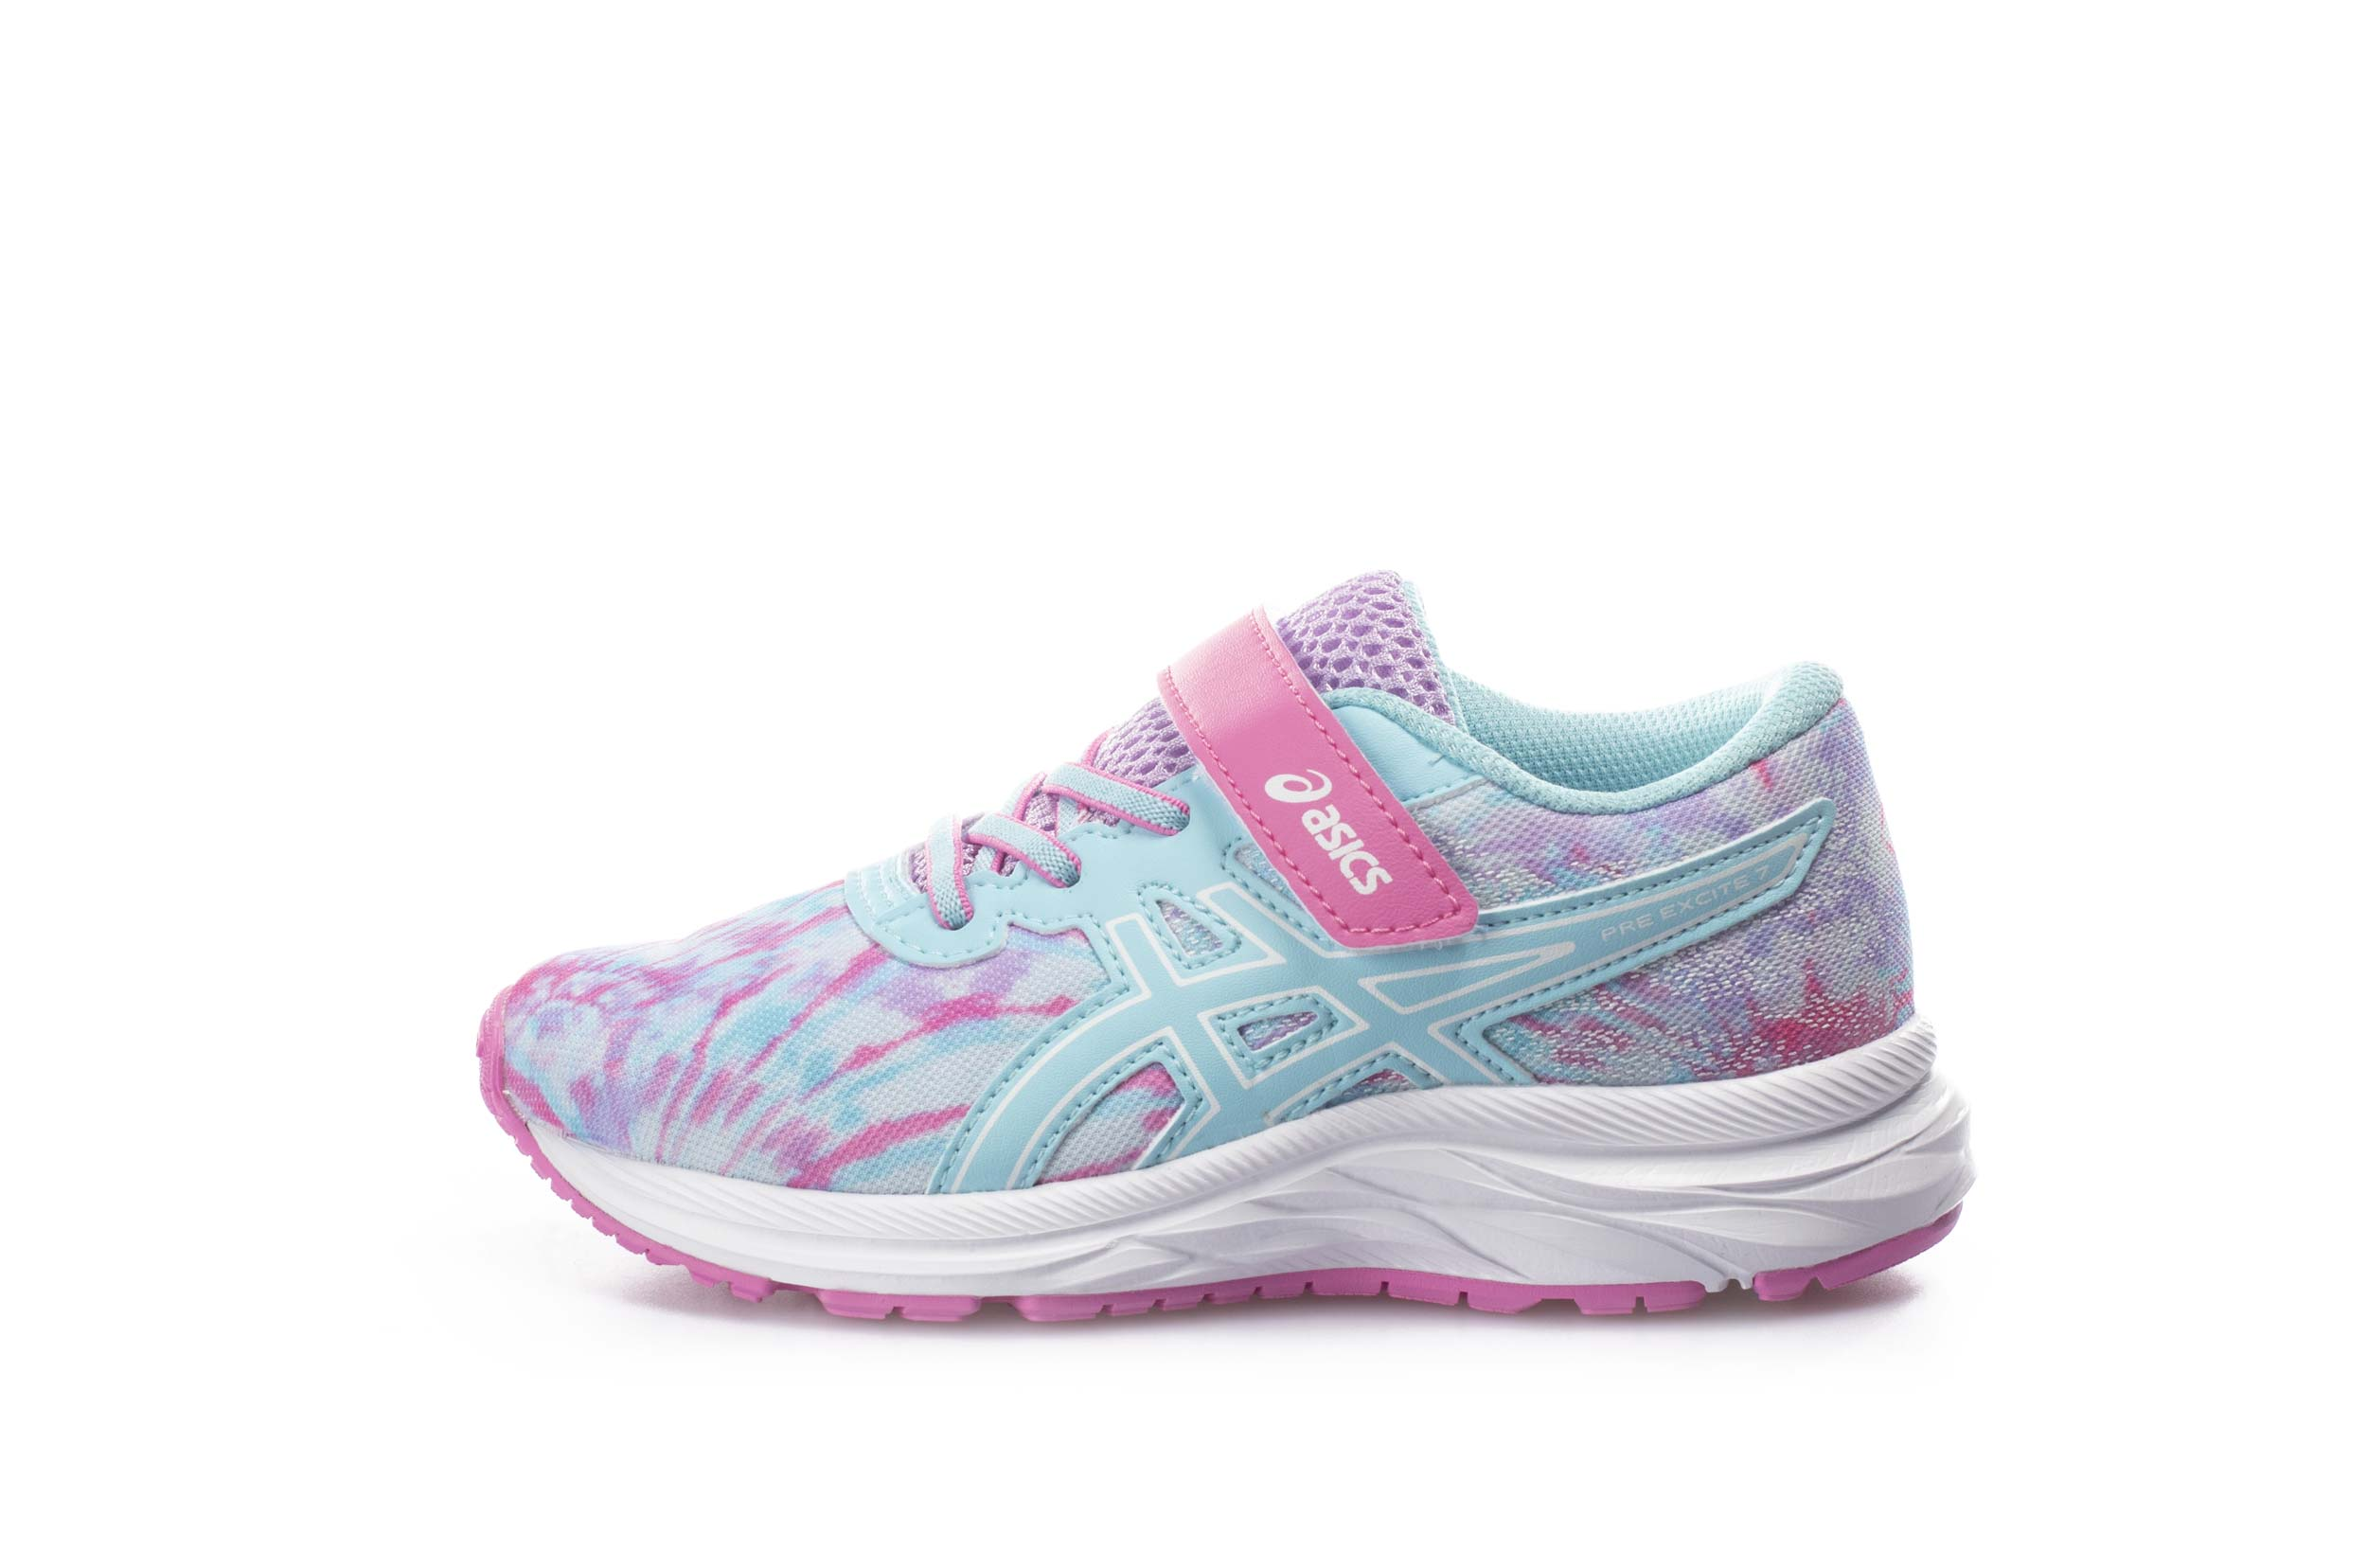 ASICS PRE EXCITE 7 PS 1014A177-400 Σιελ